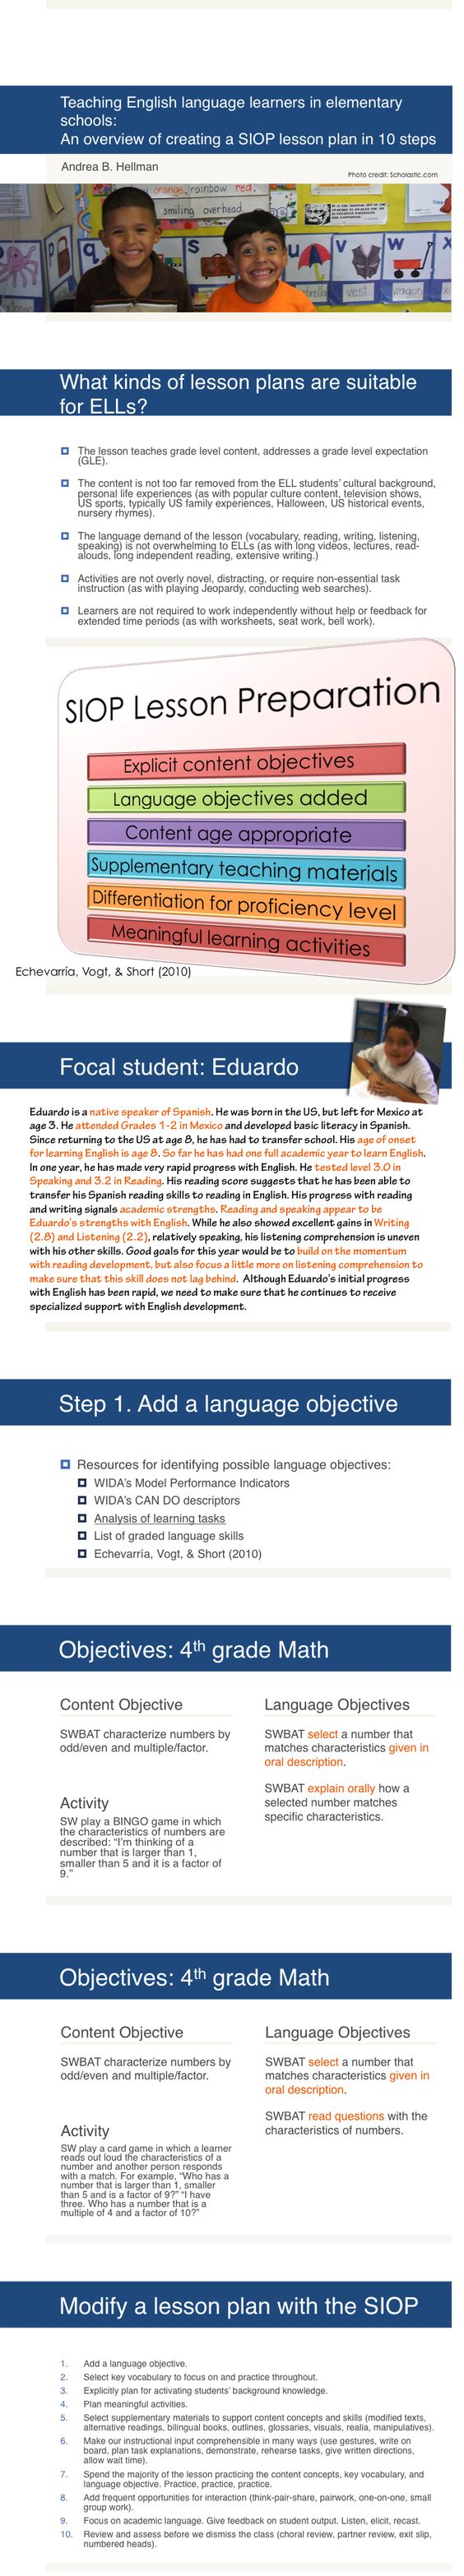 using sei strategies in a siop lesson Sheltered instruction observation protocol  strategies that are best practice for ells and  components of the siop lesson protocol are similar to a.